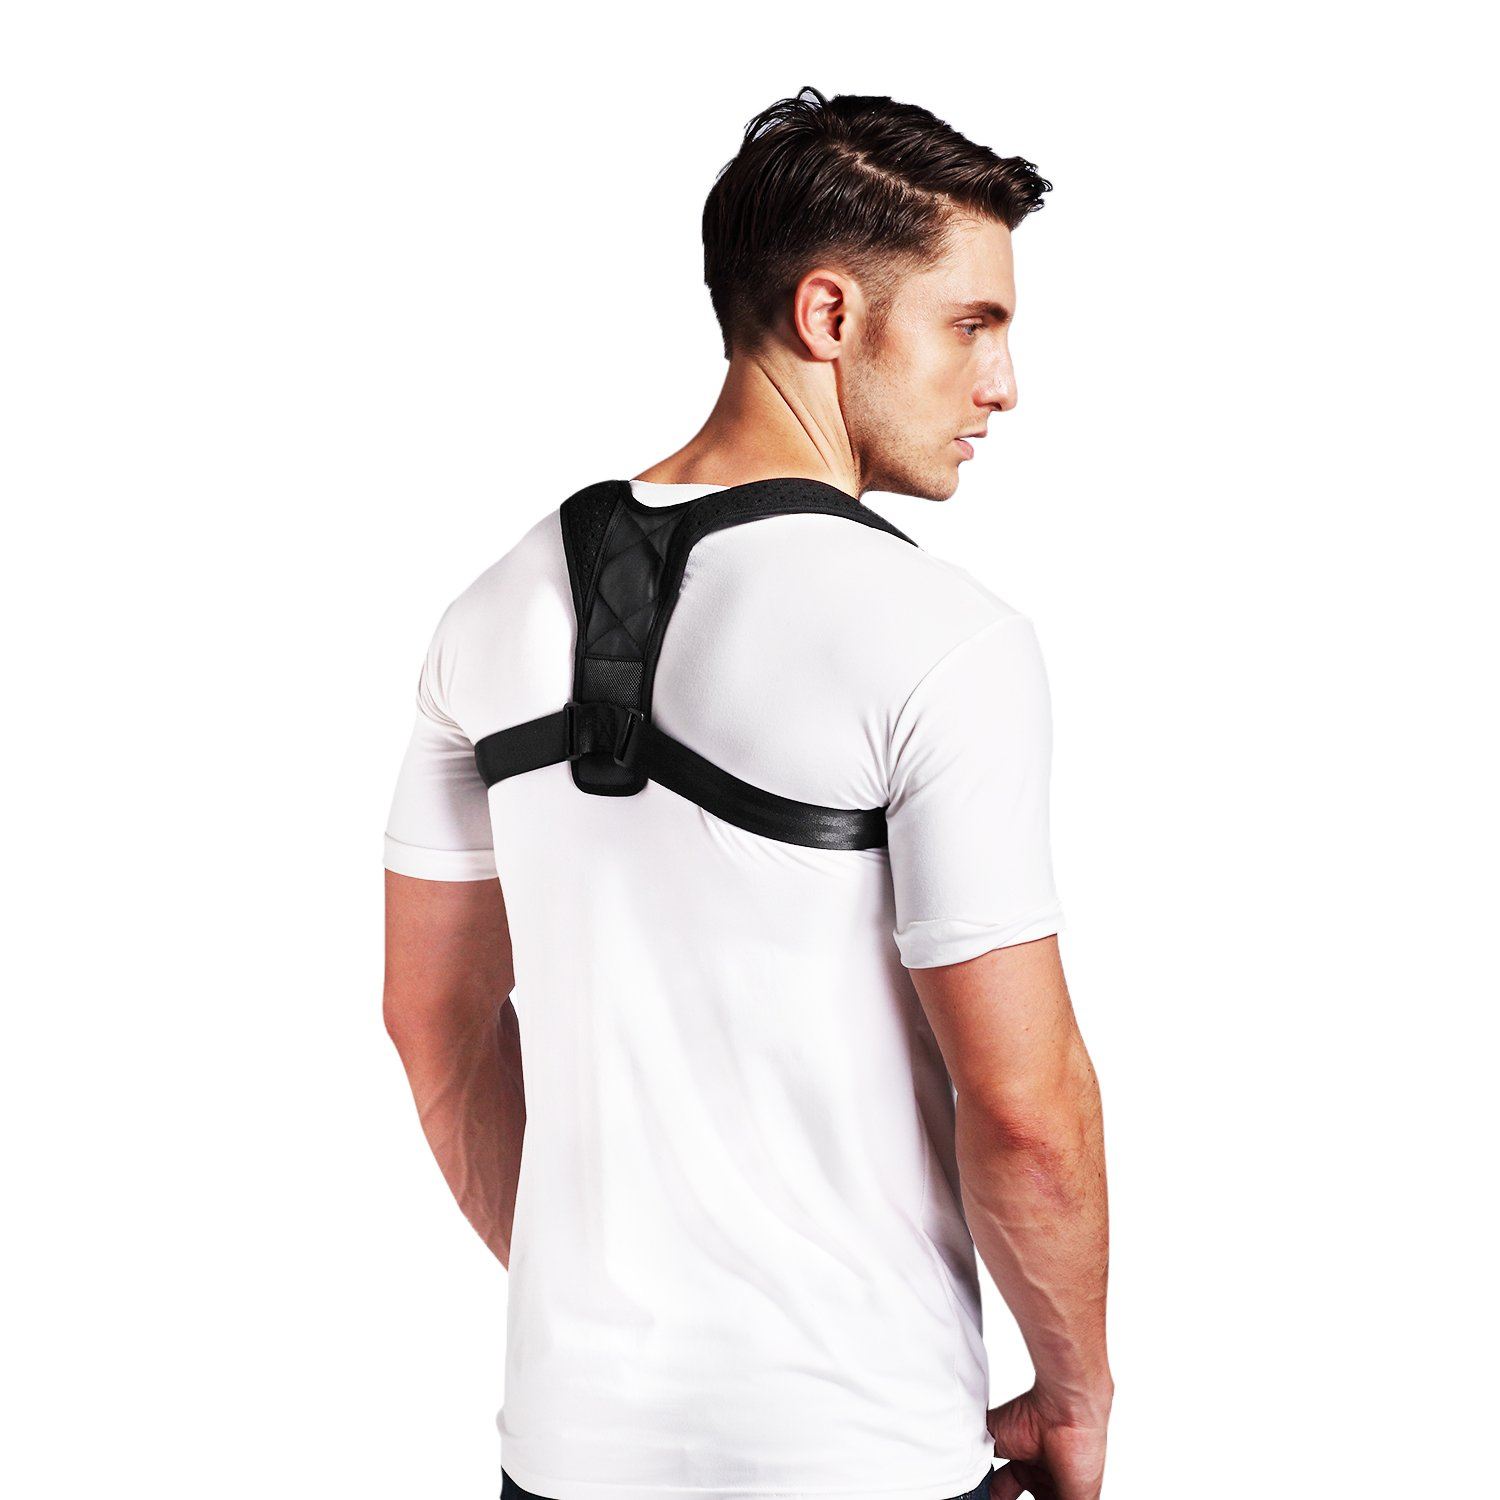 Conbays Back Posture Corrector for Women Men Adjustable Clavicle Brace Support Shoulder Connector Upper Back Pain Relief Posture Support Strap for Home Office by Conbays (Image #3)